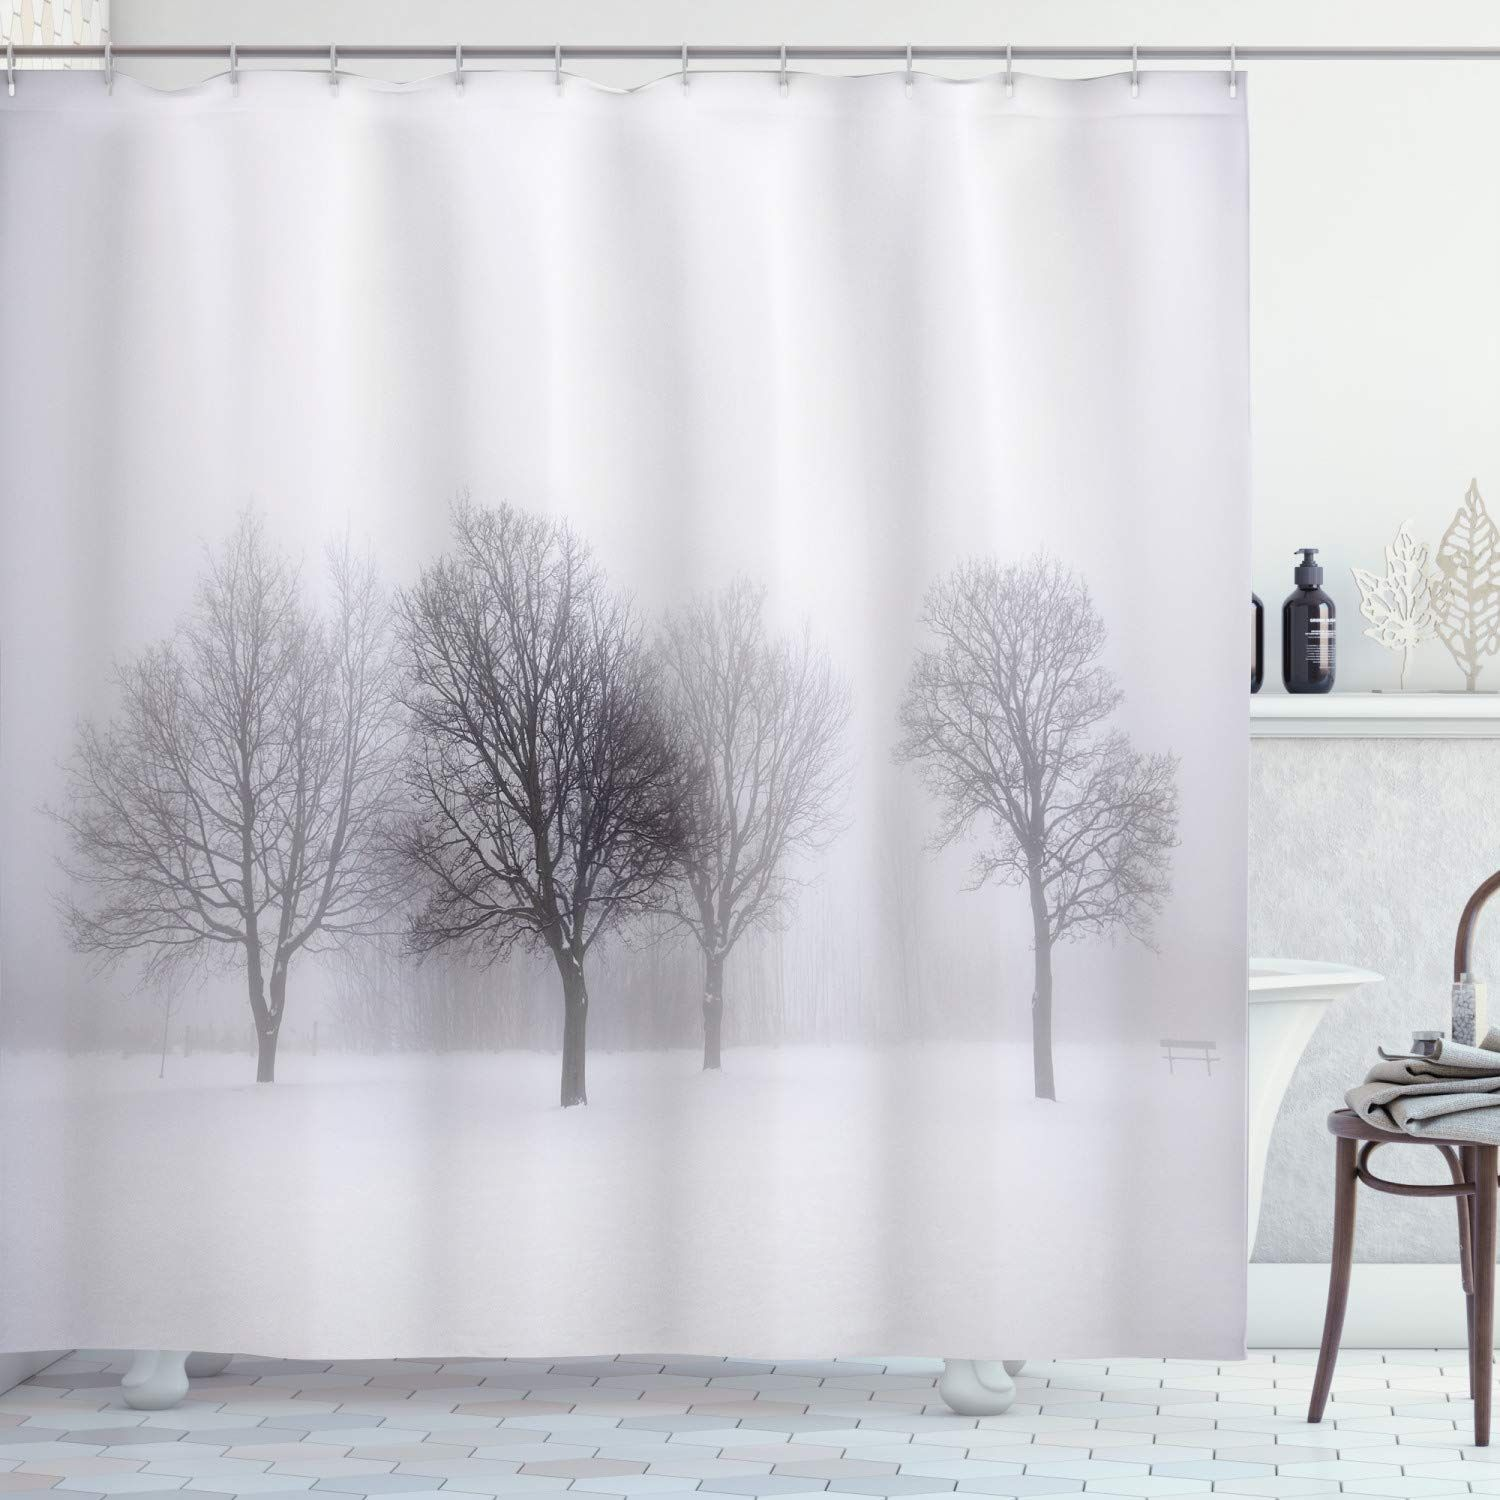 Printed Waterproof Shower Curtain Bathroom Decor Set with Hooks by Ambesonne